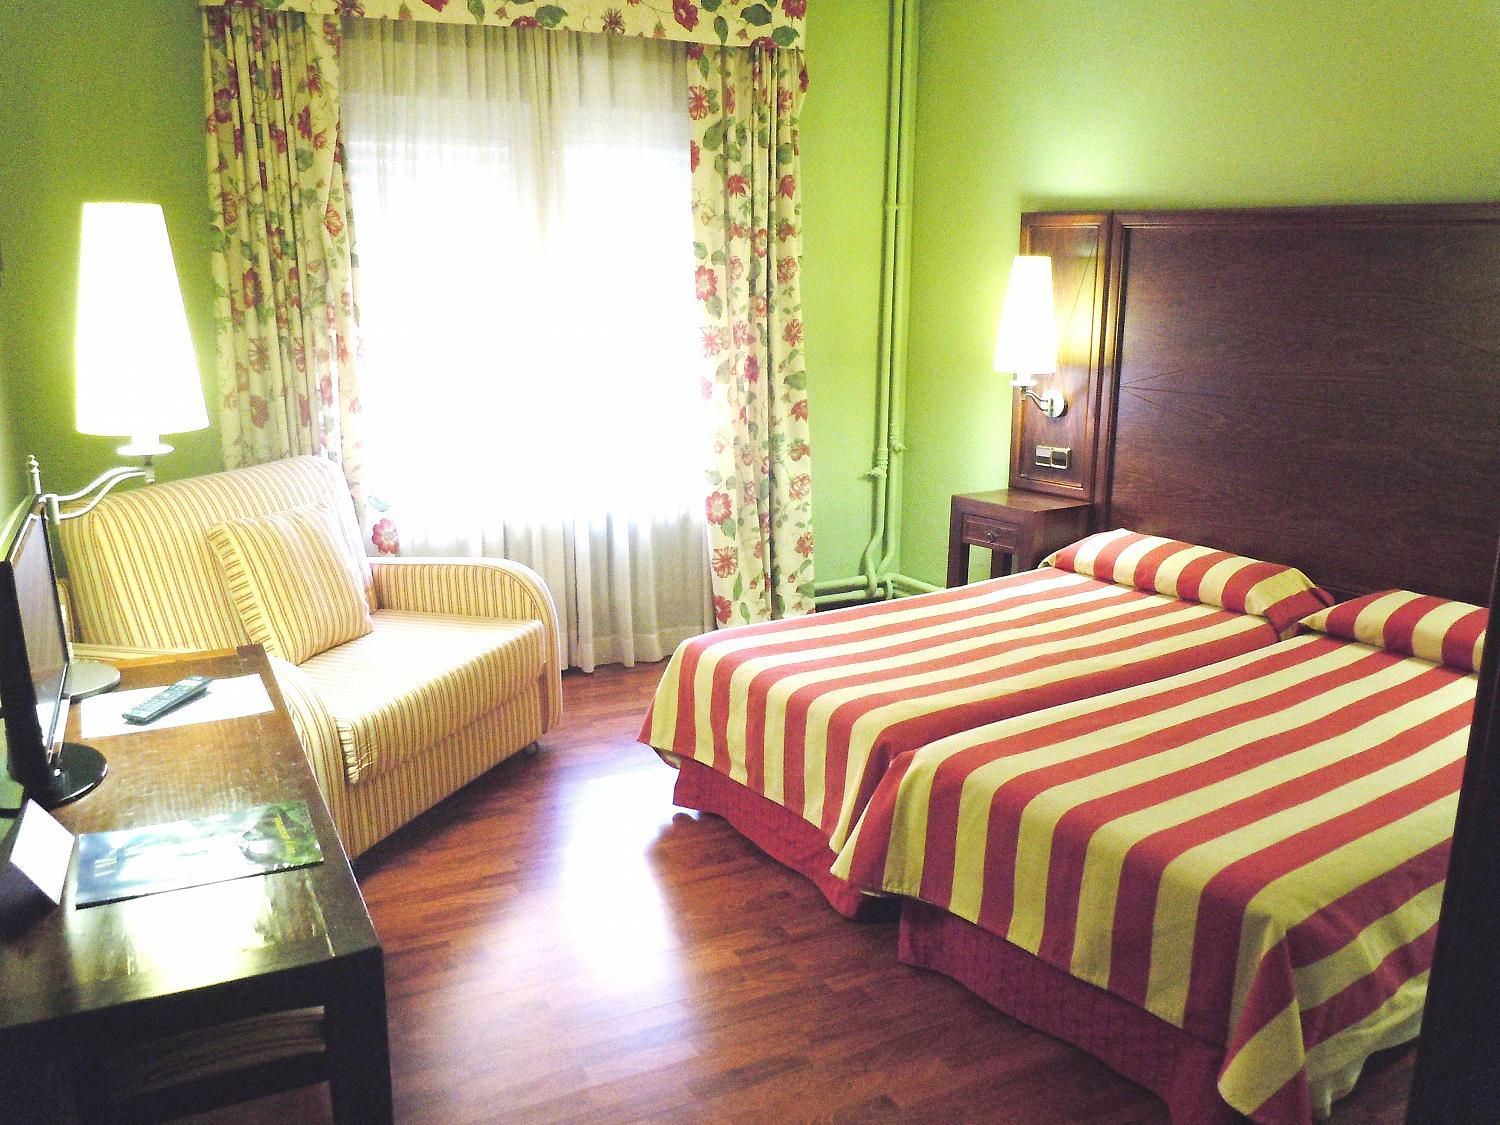 Cuadruple(2 beds+2 sofa bed)